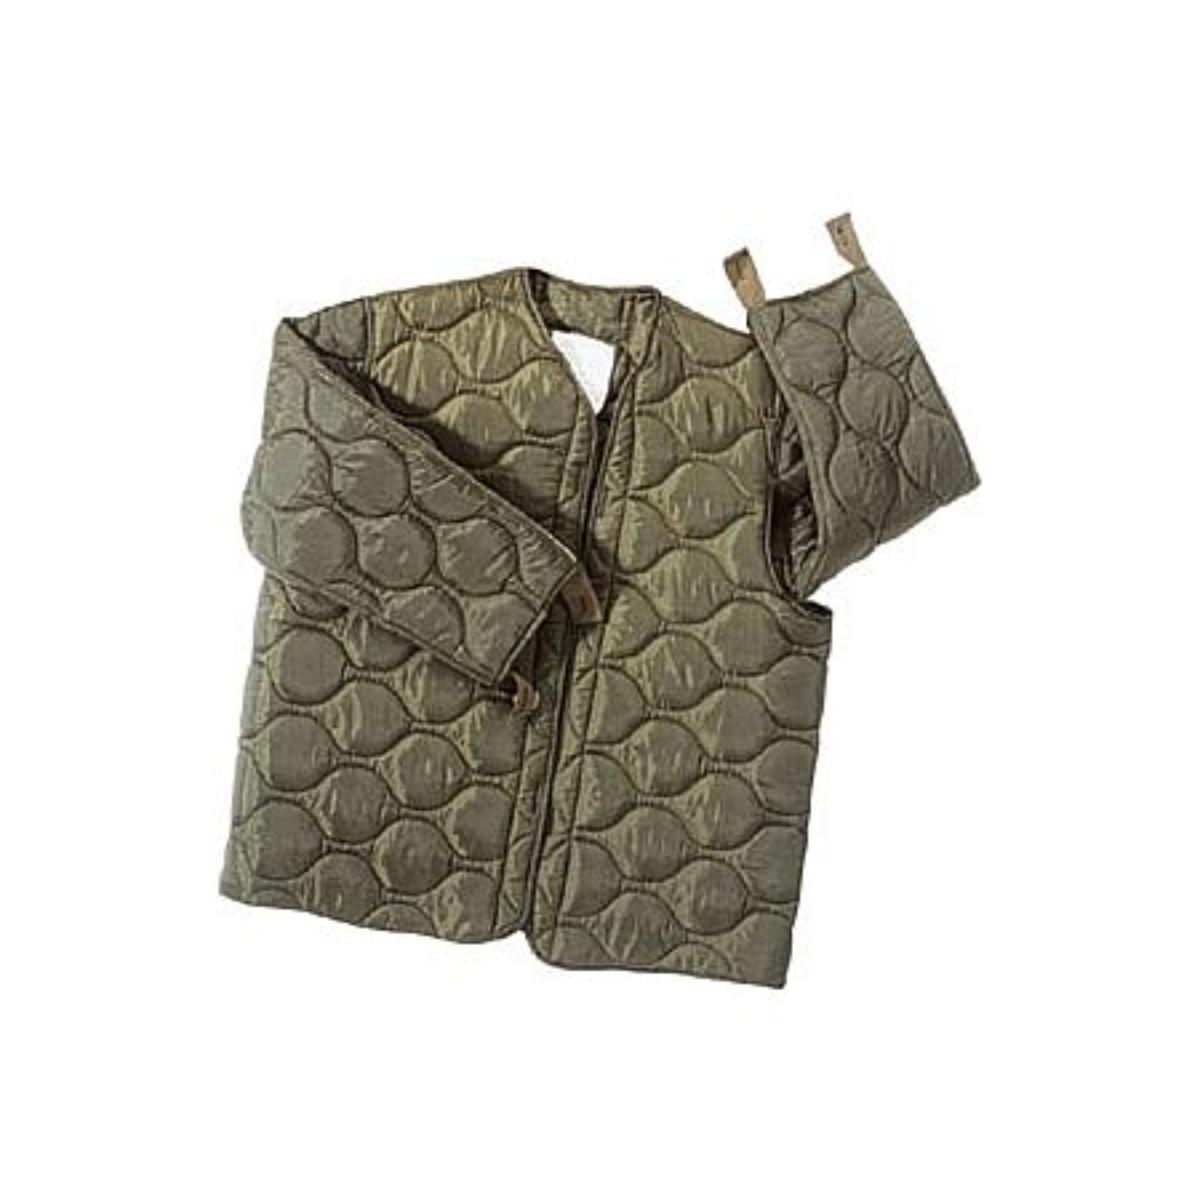 Ultra Force M-65 Field Jacket Liner, Olive Drab